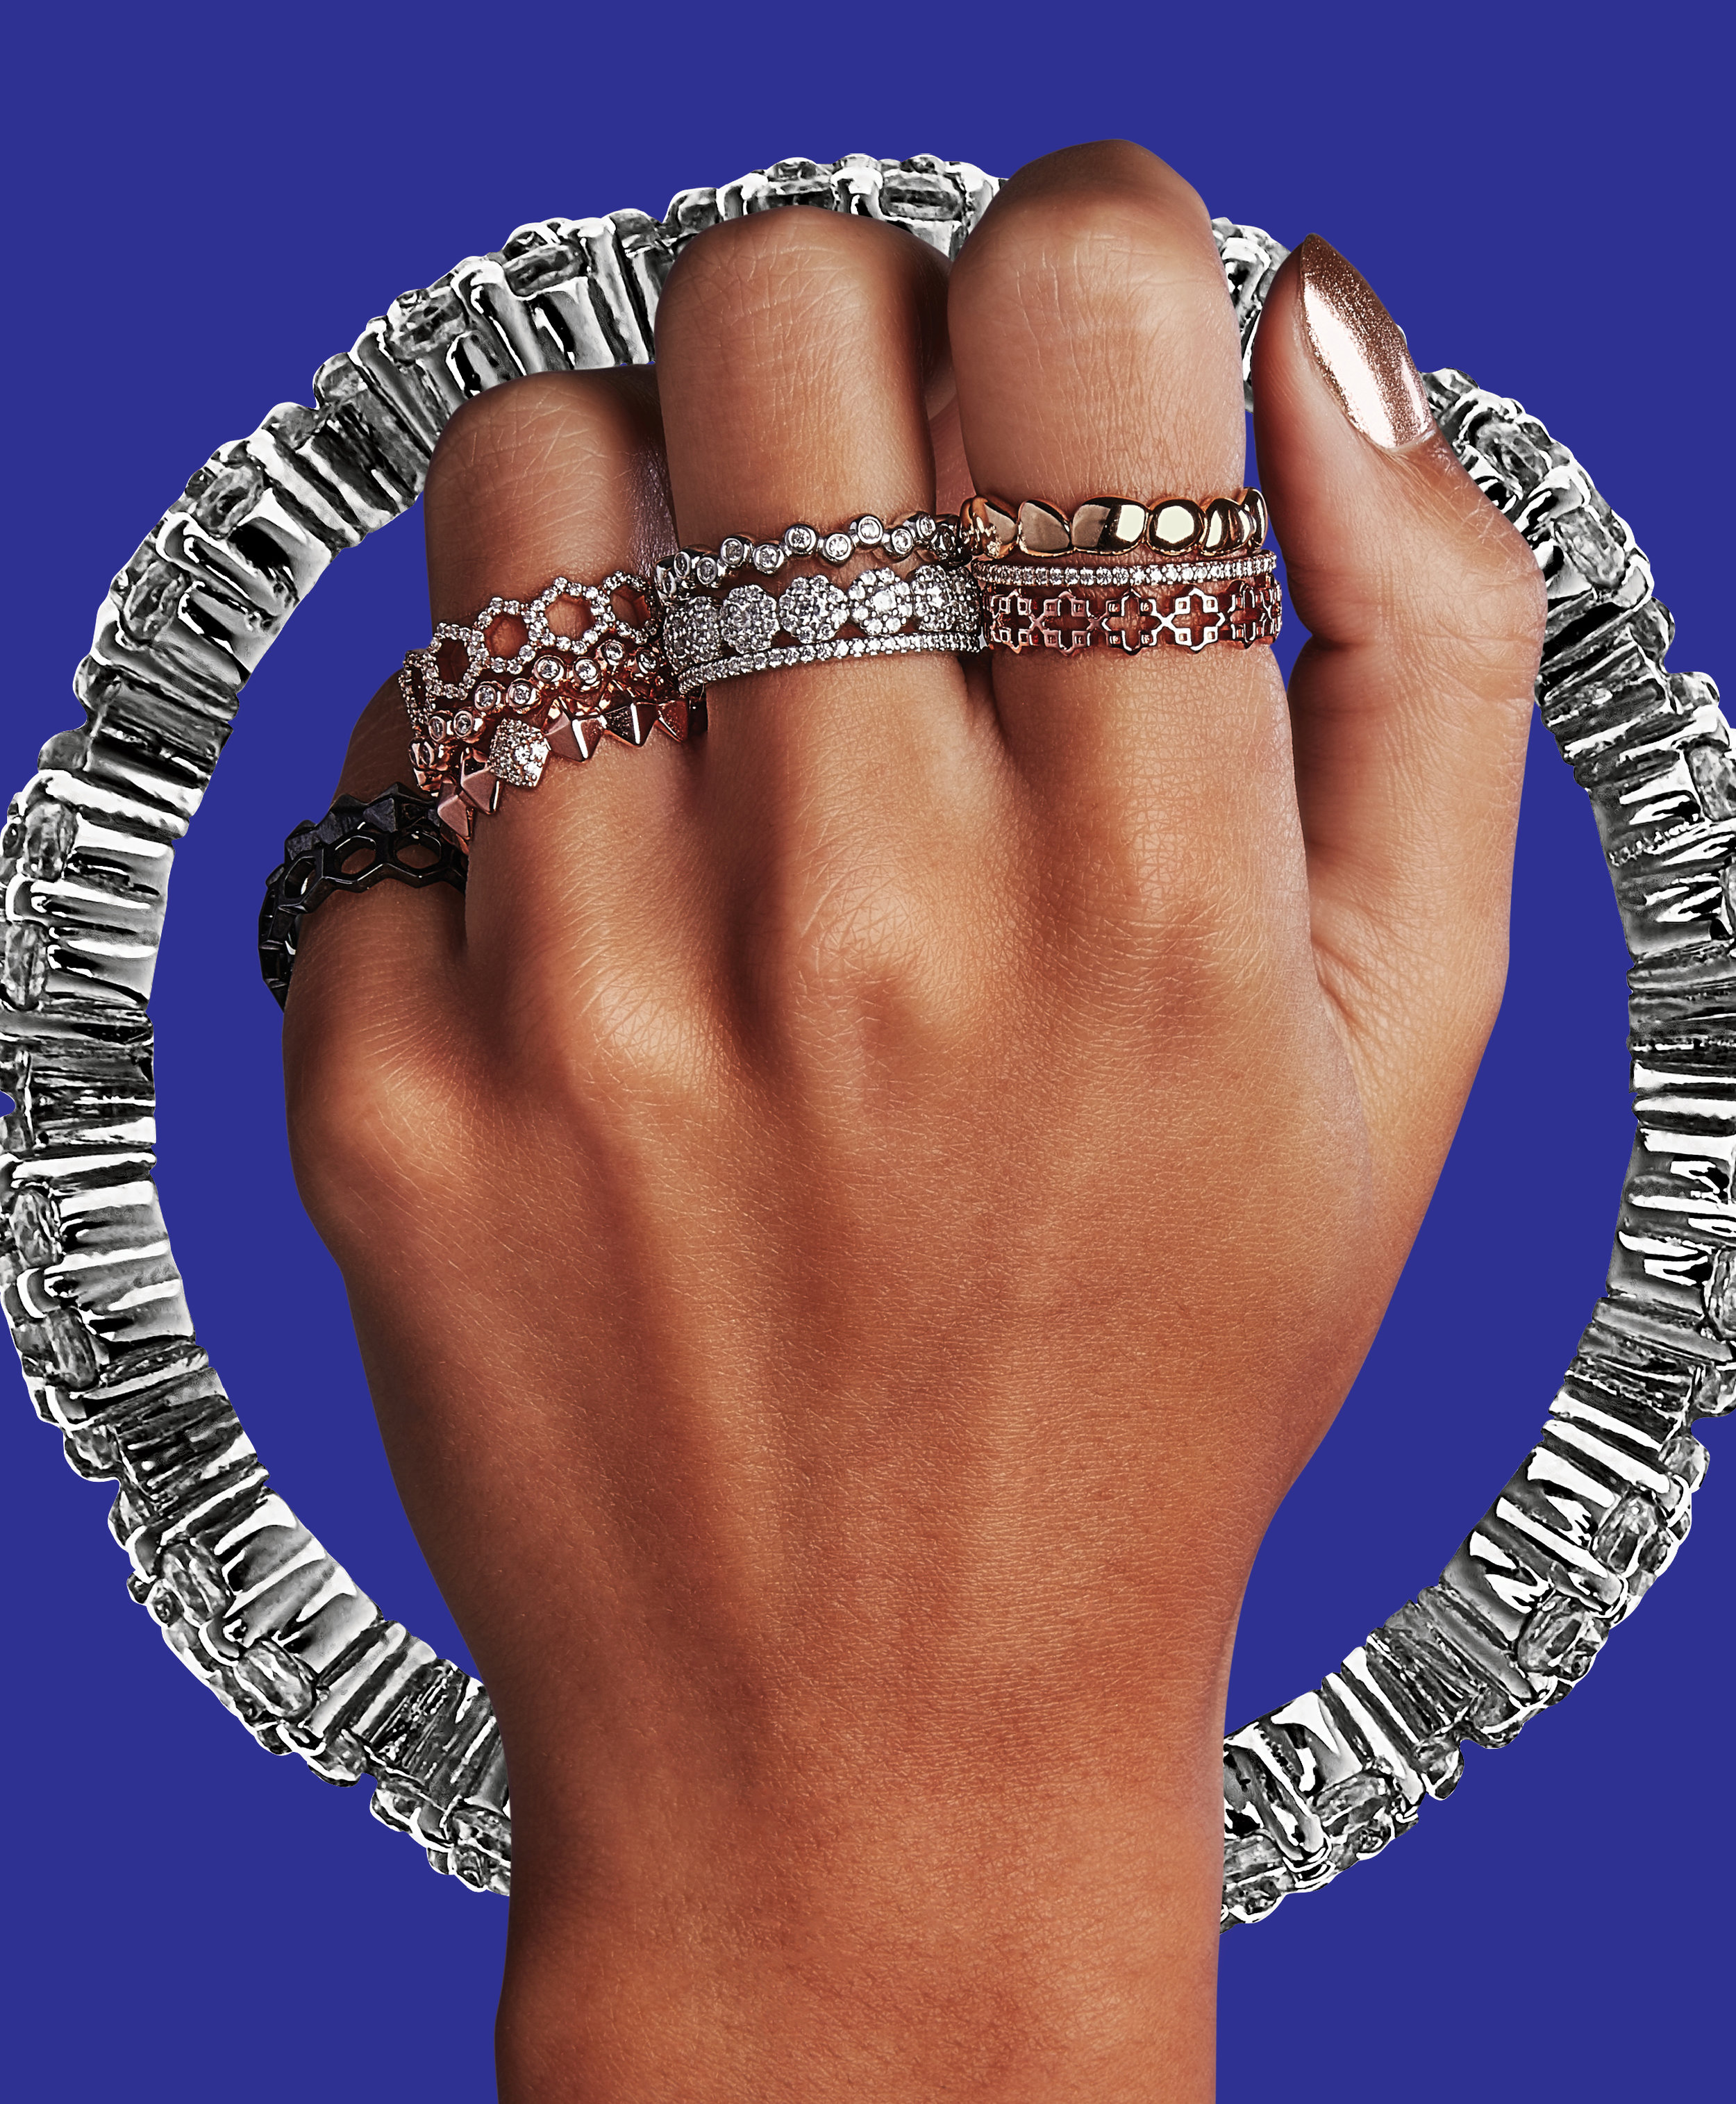 Birks Iconic Iconic Collection - Creative Director and Art Director Guillaume Briere (Montreal and Toronto) - Jewelry and hand photography in an collage style - Bold and Graphic Concept